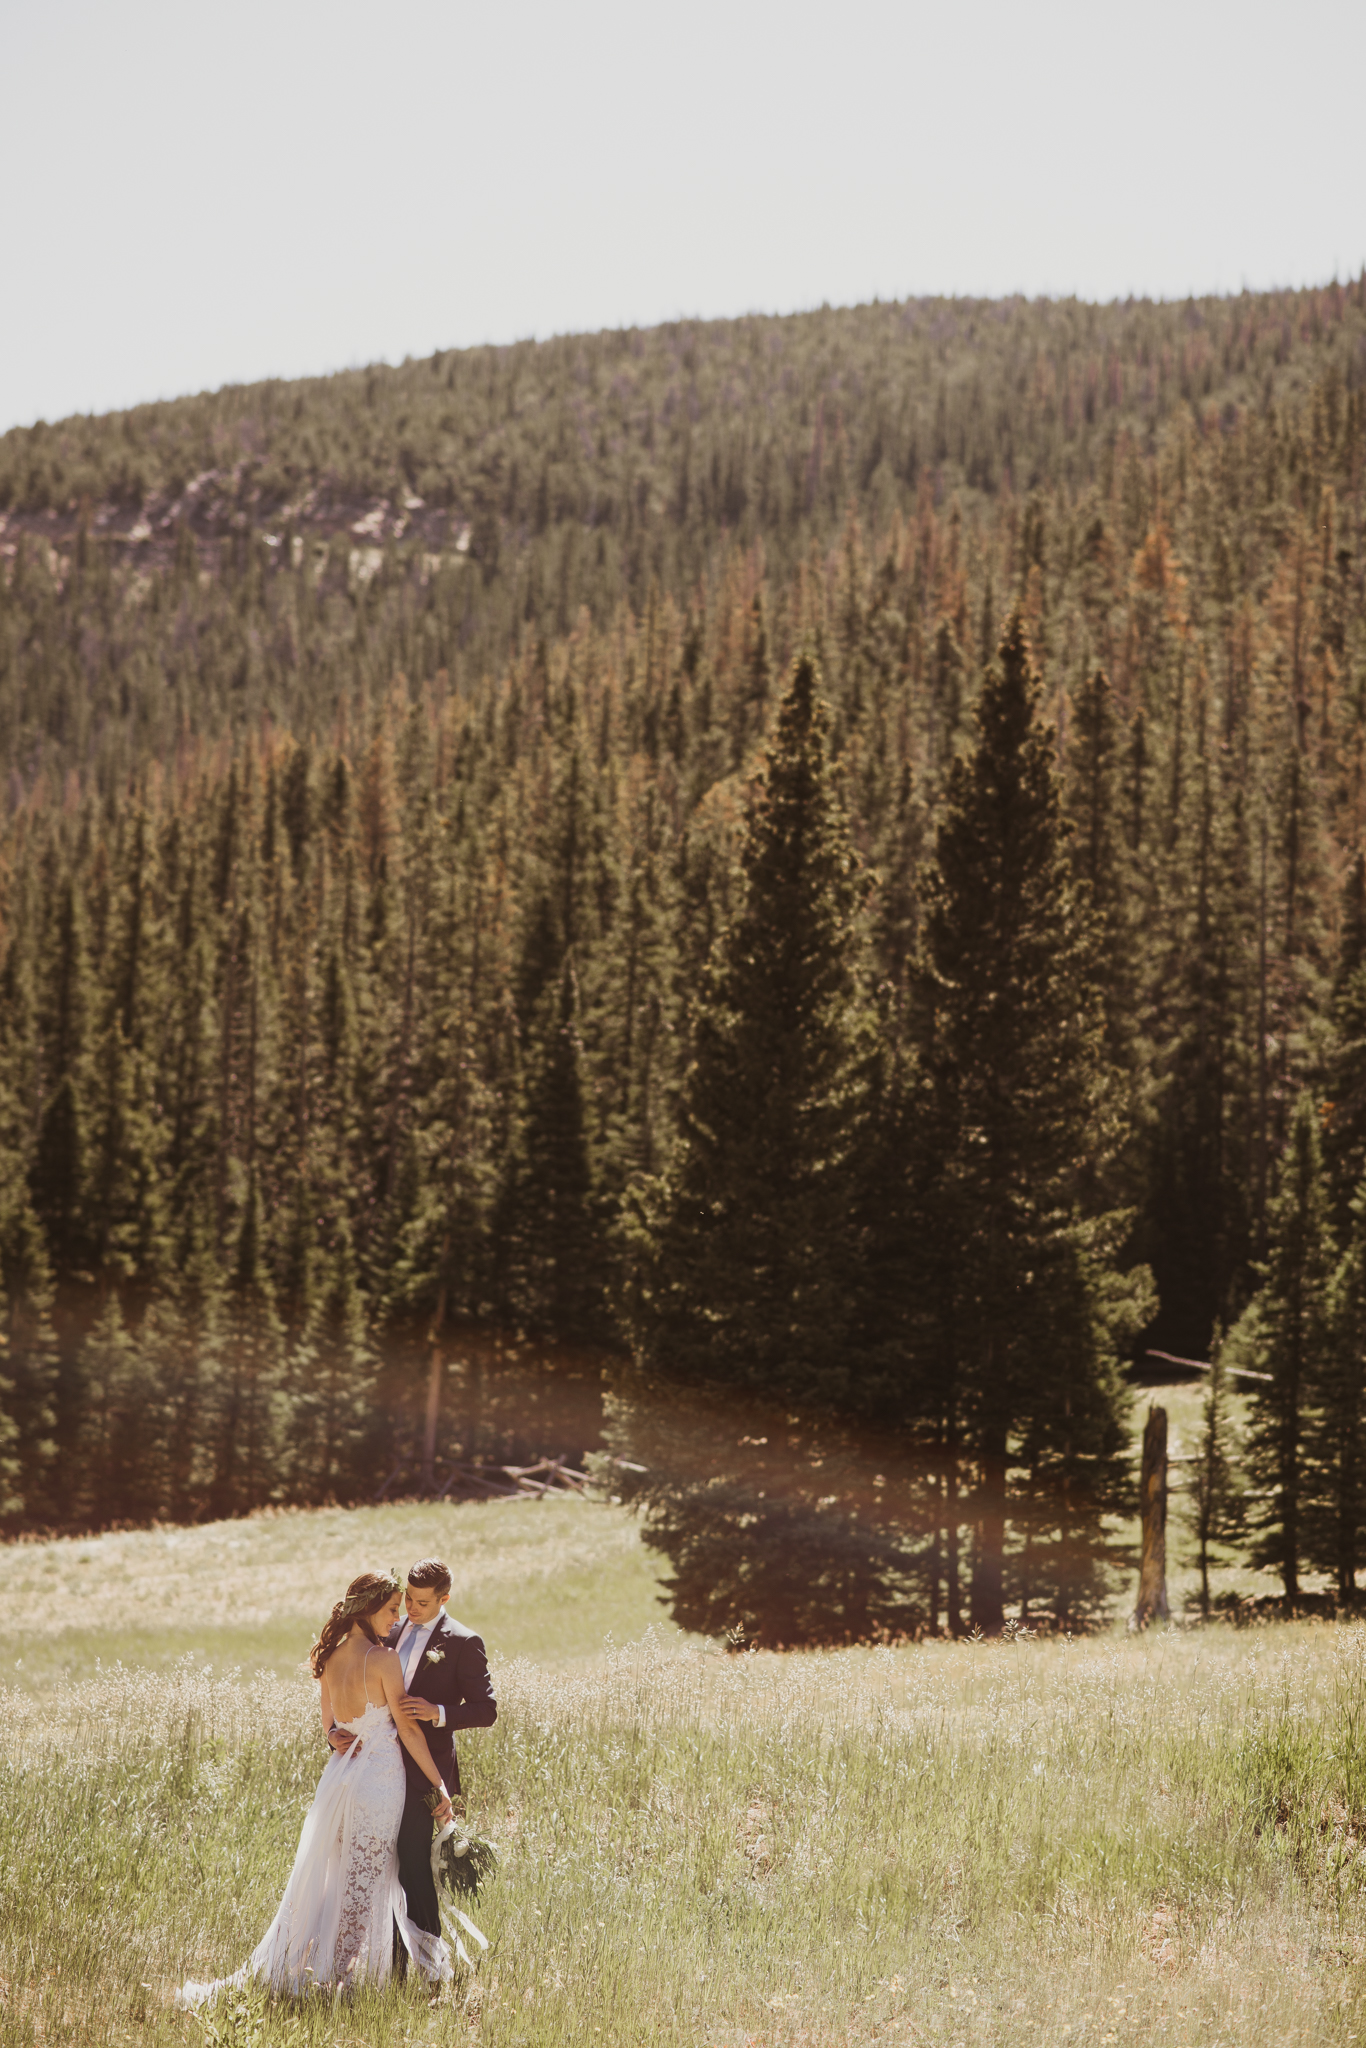 ©Isaiah + Taylor Photography - Estes National Park Adventure Elopement, Colorado Rockies-74.jpg